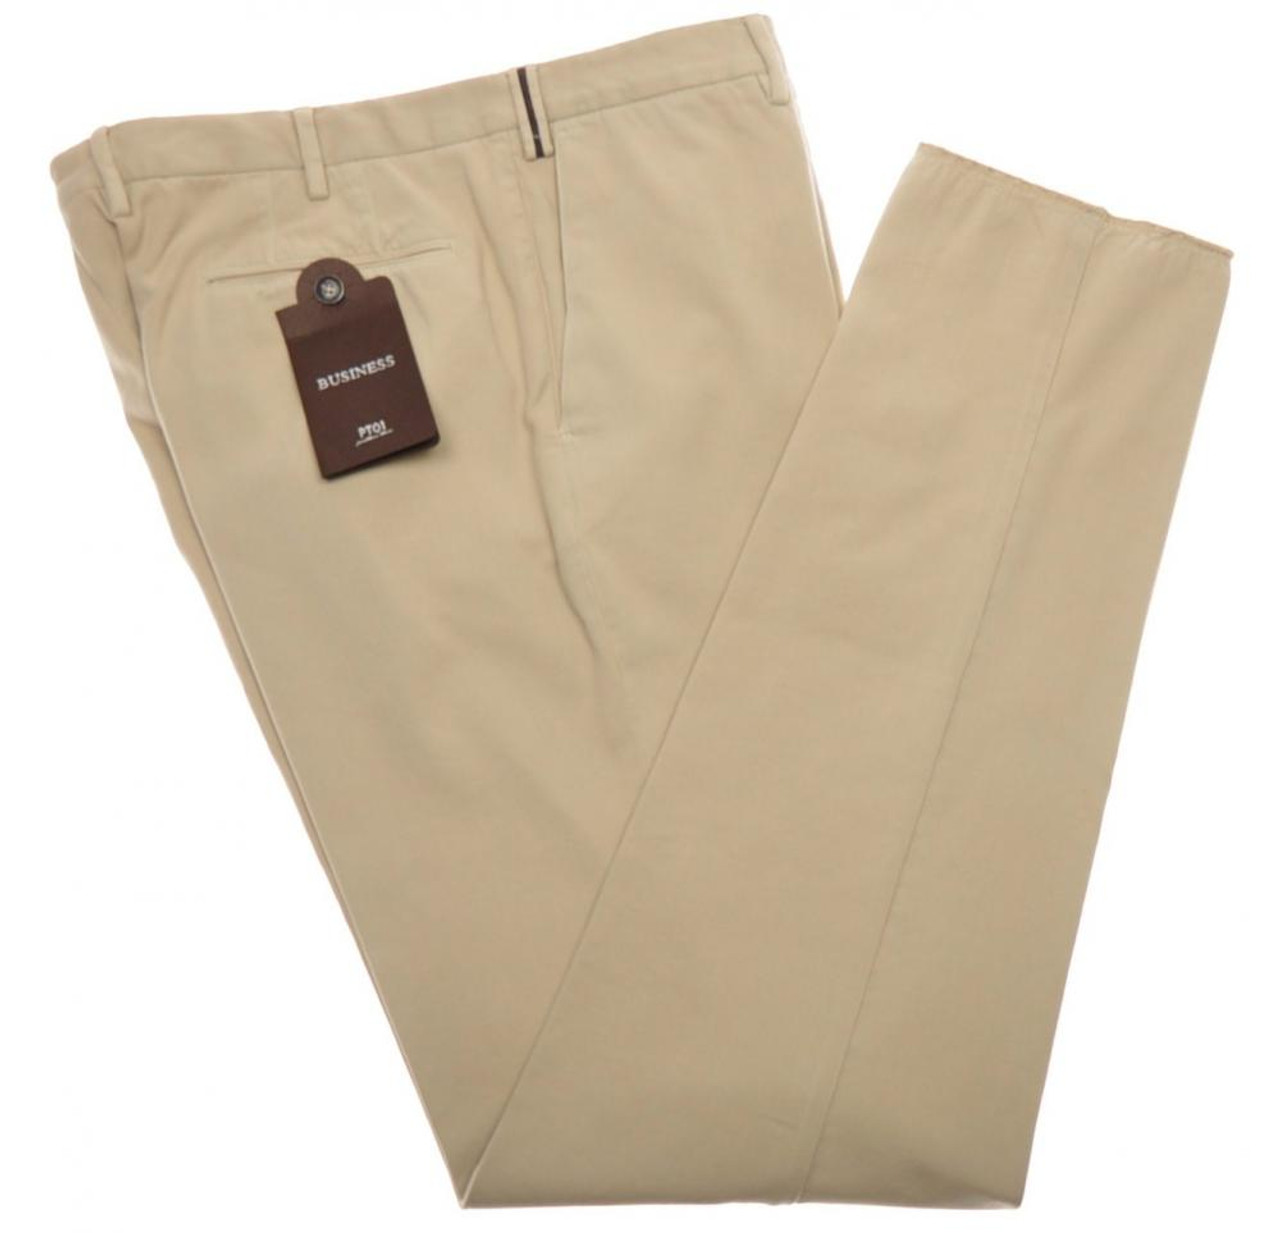 Beige Business trousers Pantaloni Torino